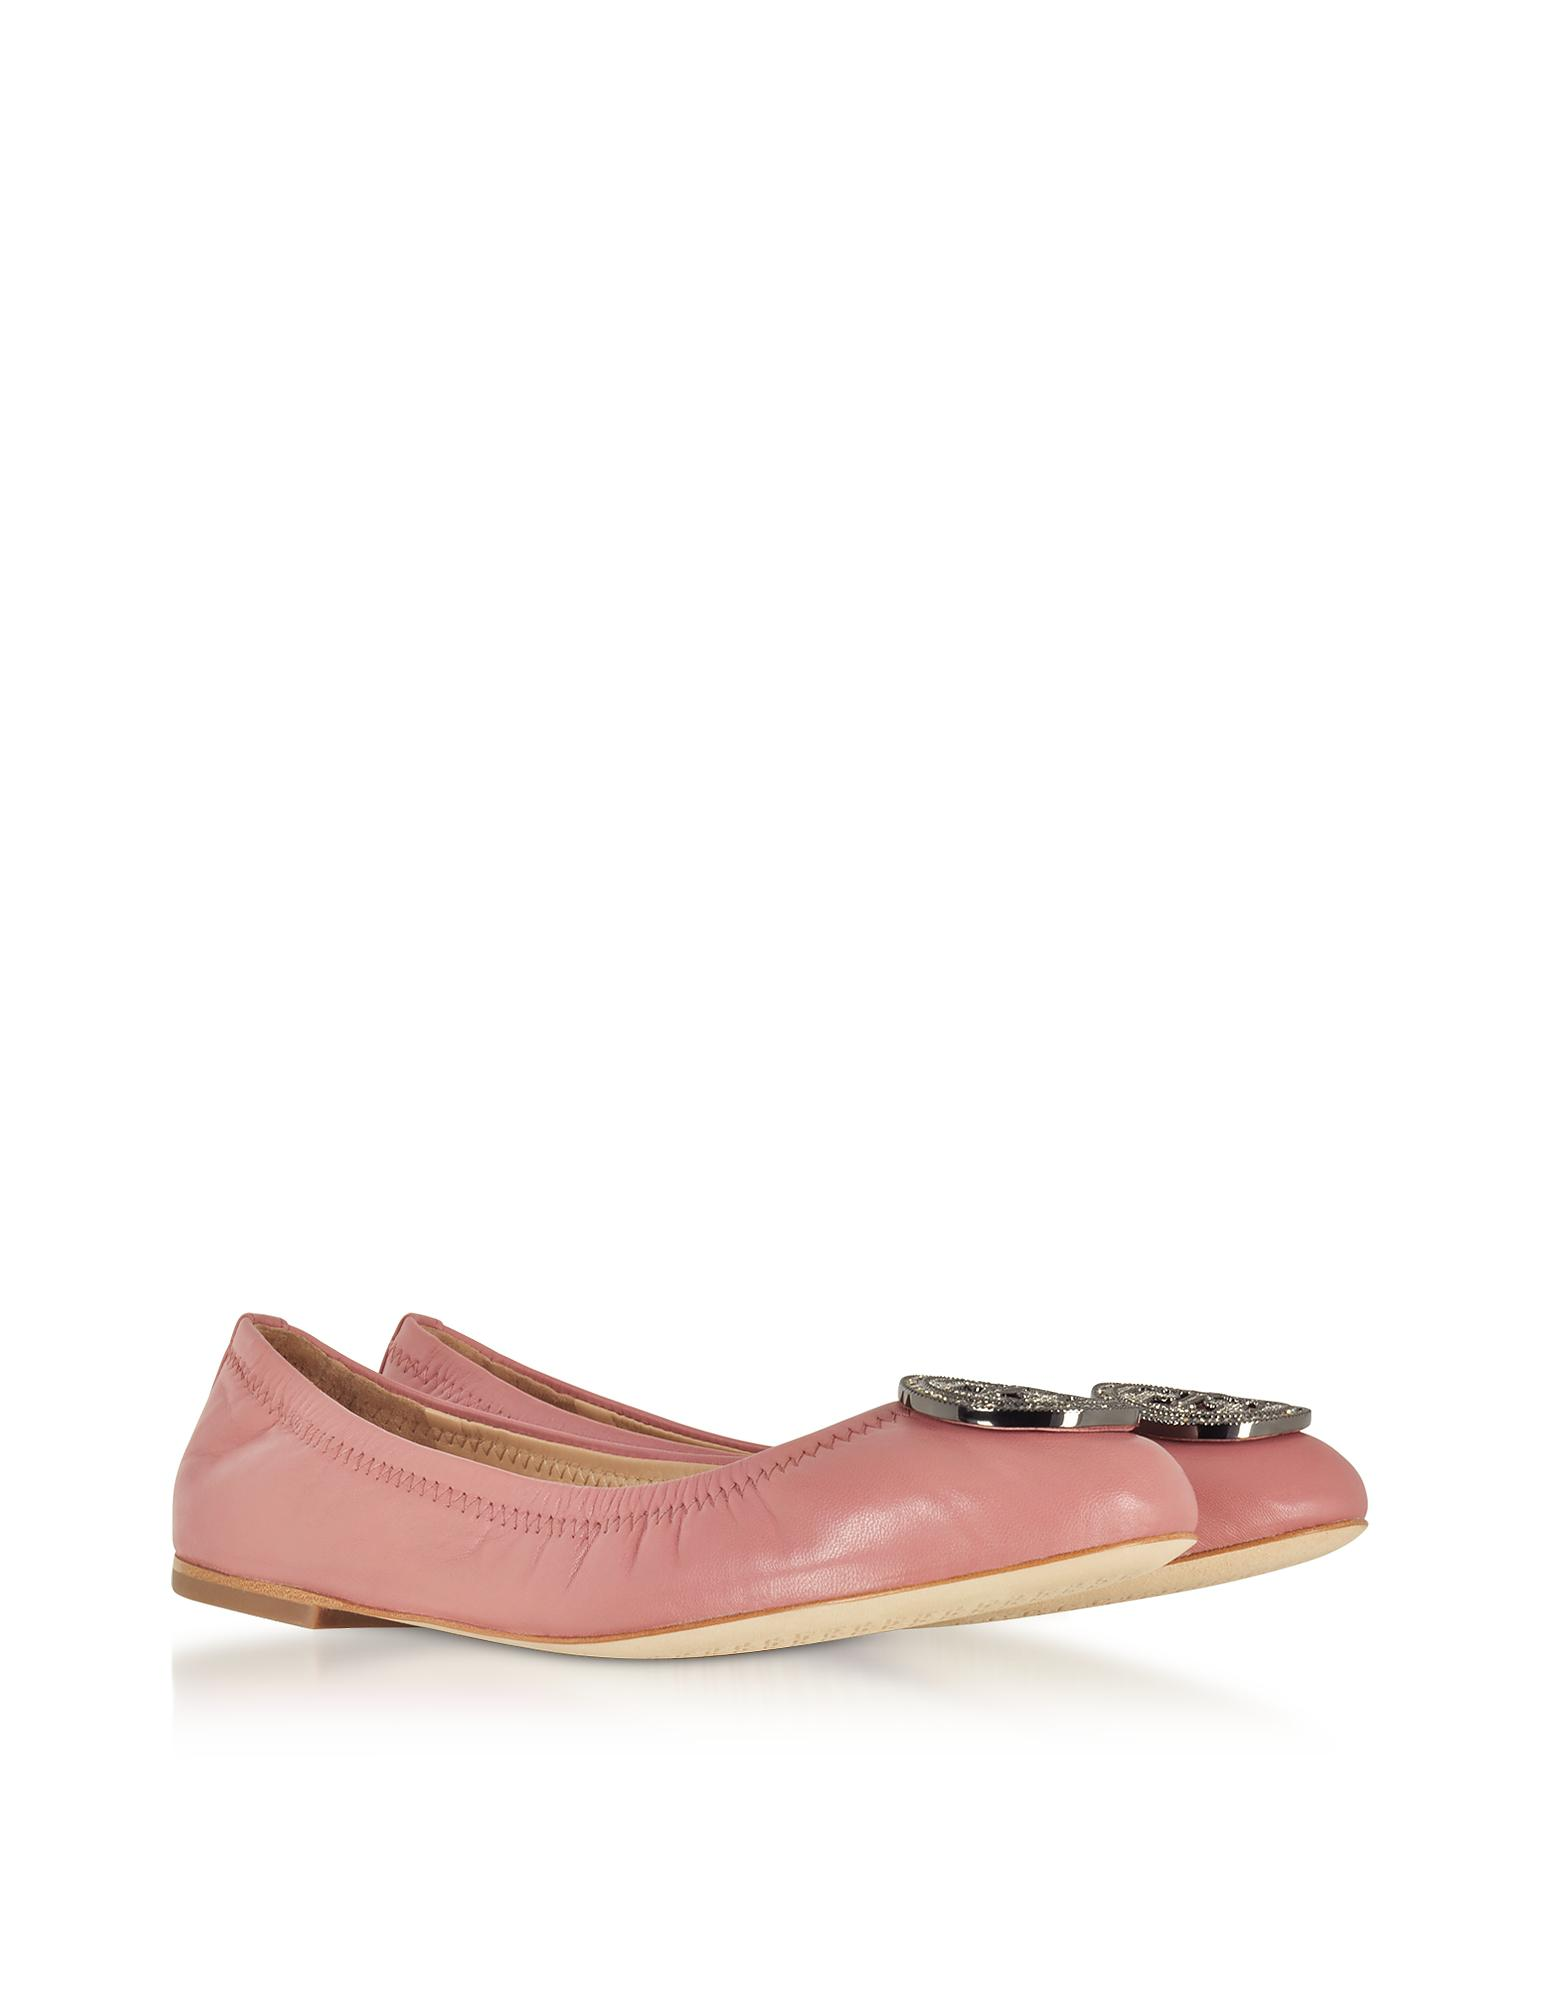 d75aba4327e4 Lyst - Tory Burch Liana Pink Magnolia Leather Ballet Flats in Pink